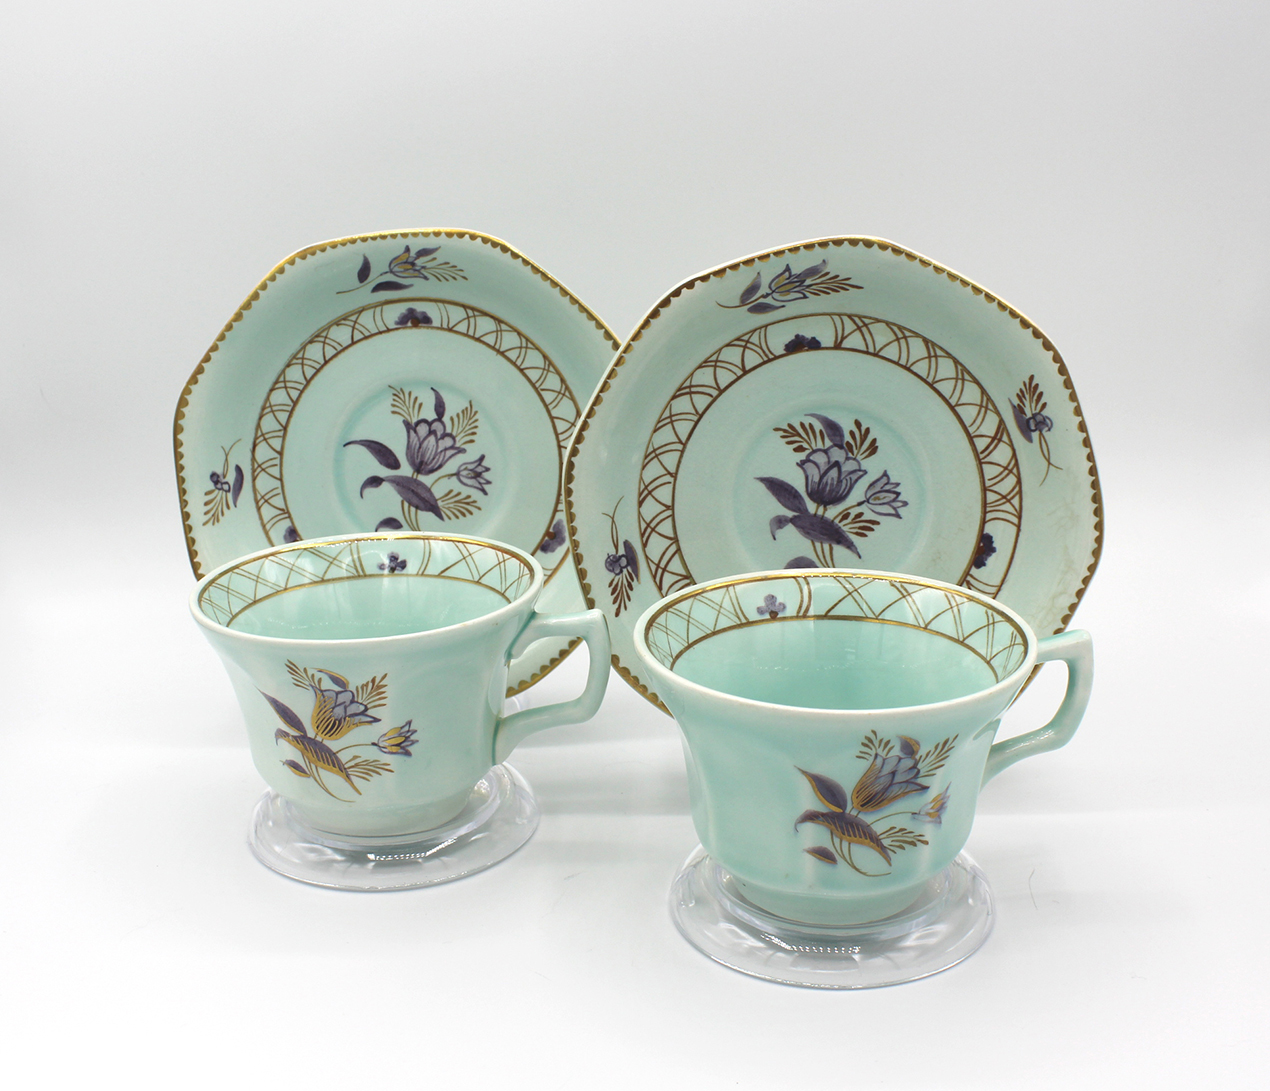 Vintage 1950s Adams Calyx Ware Regent Pattern Flat Cups & Saucers Set | Whispering City RVA